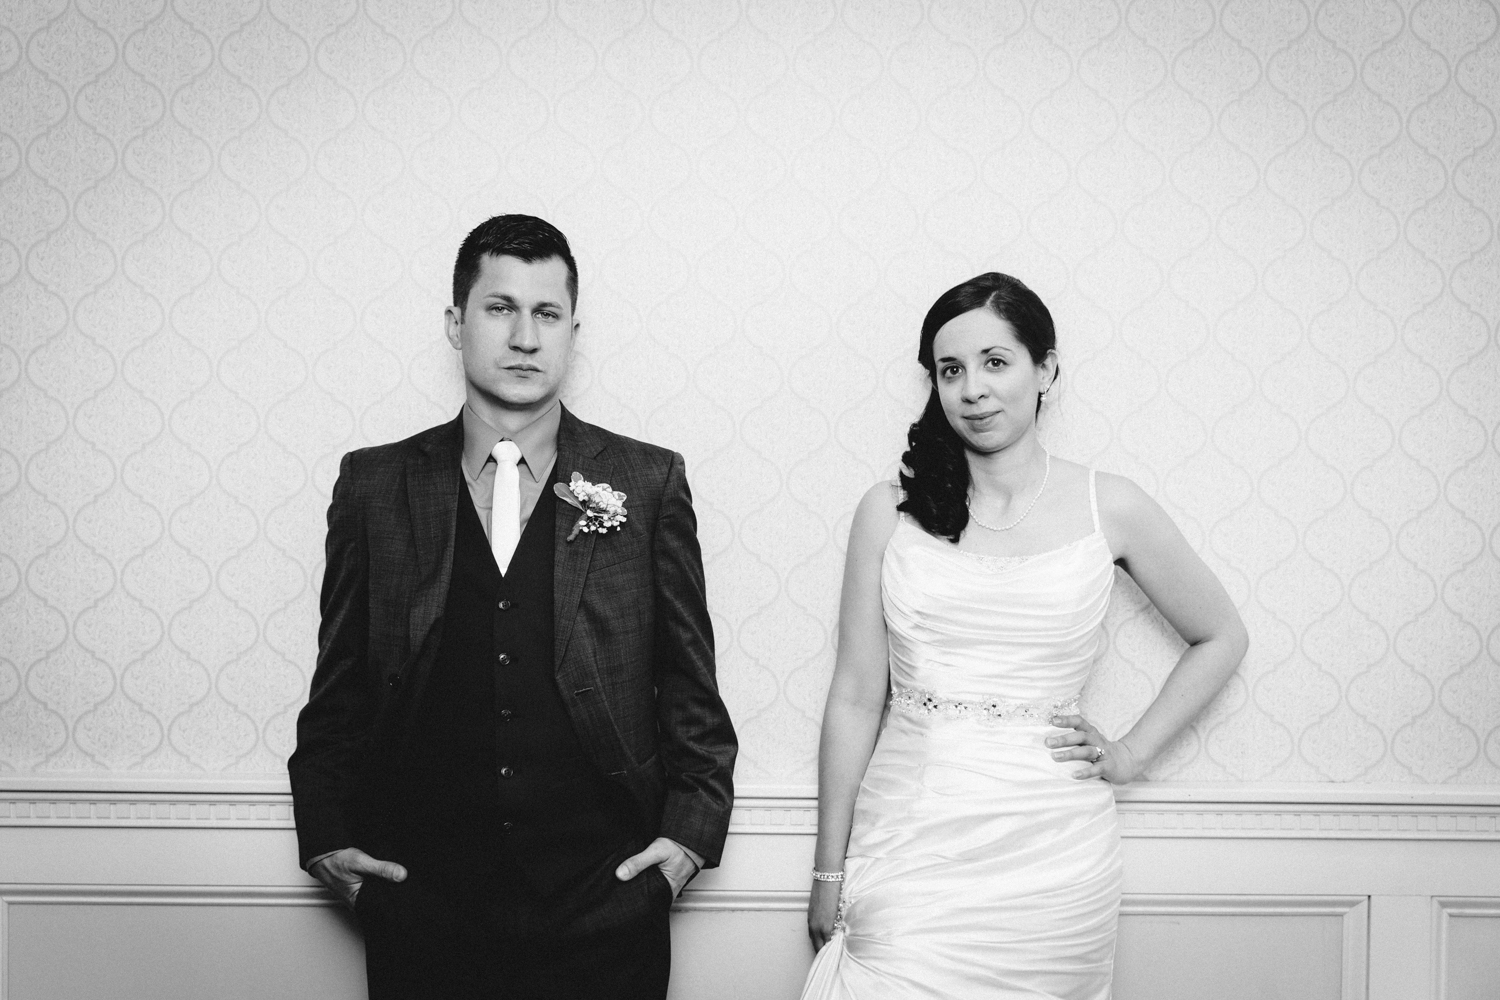 Serious bride and groom portrait